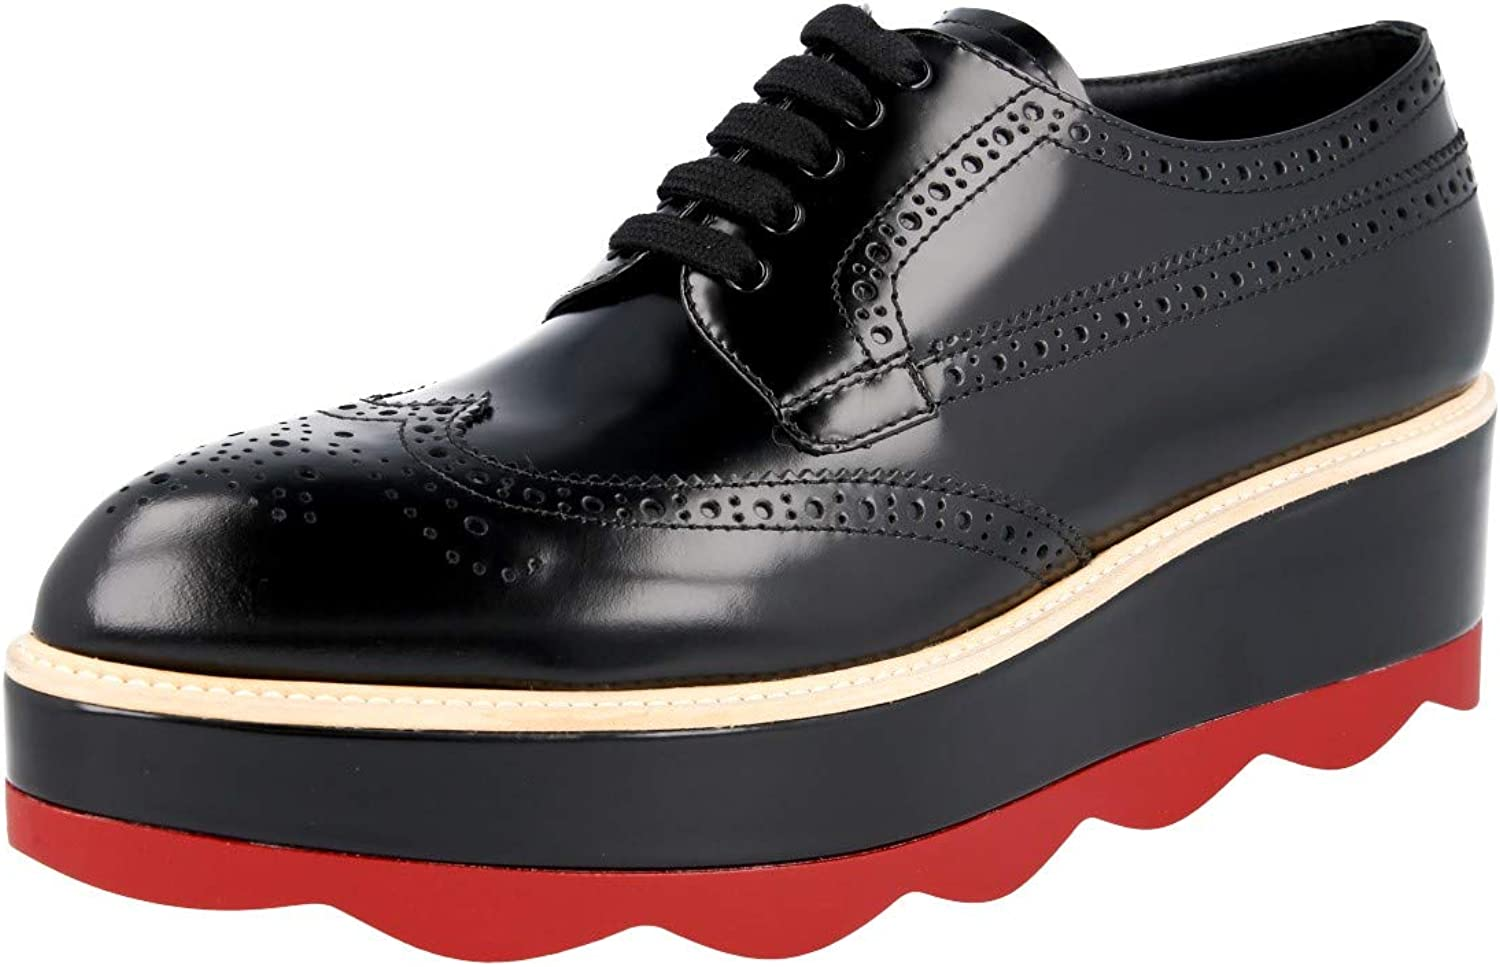 Full Brogue Leather Lace-up Shoes